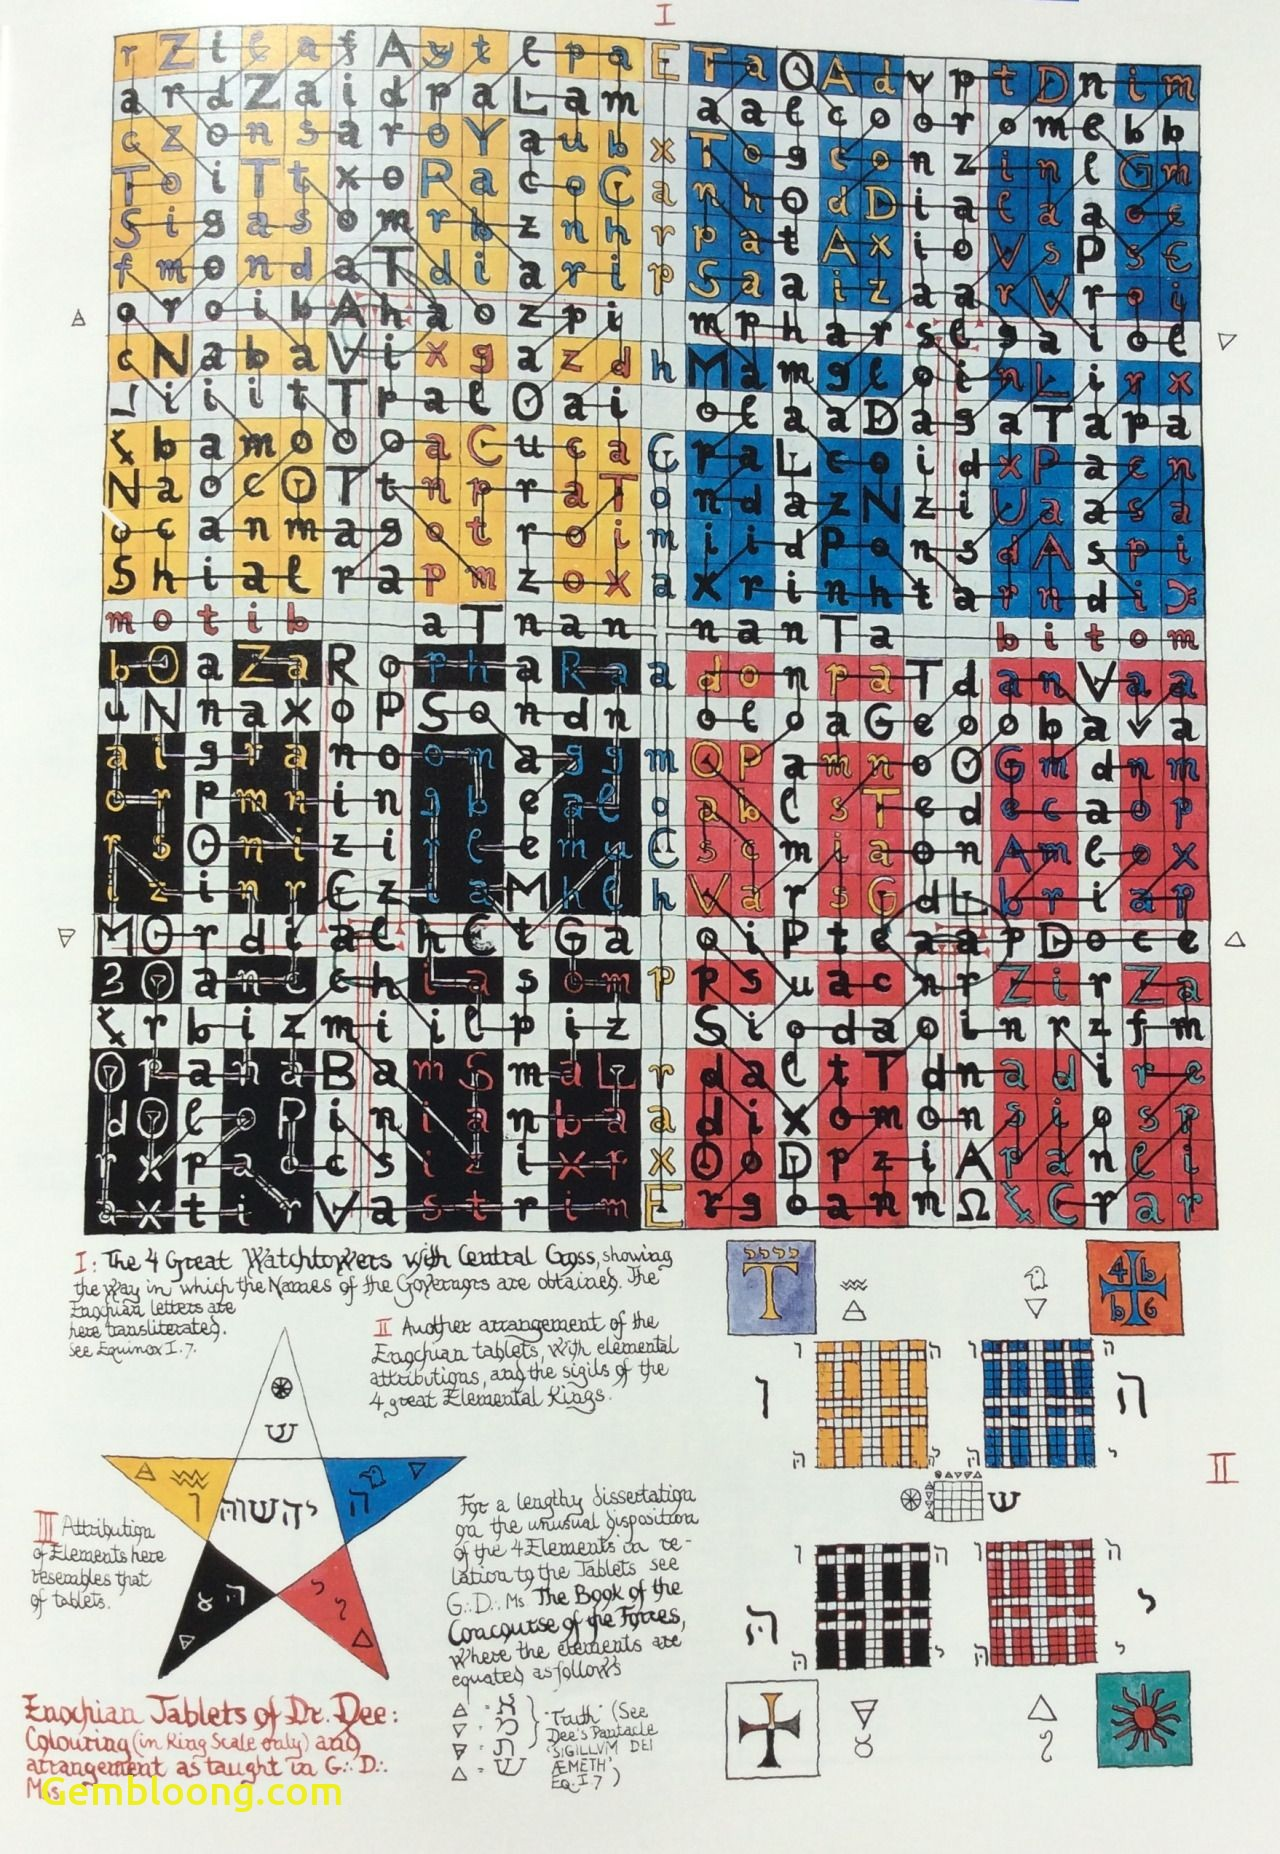 One Free Carfax Inspirational Enochian Magic Diagrams Painted by Steffi Grant From